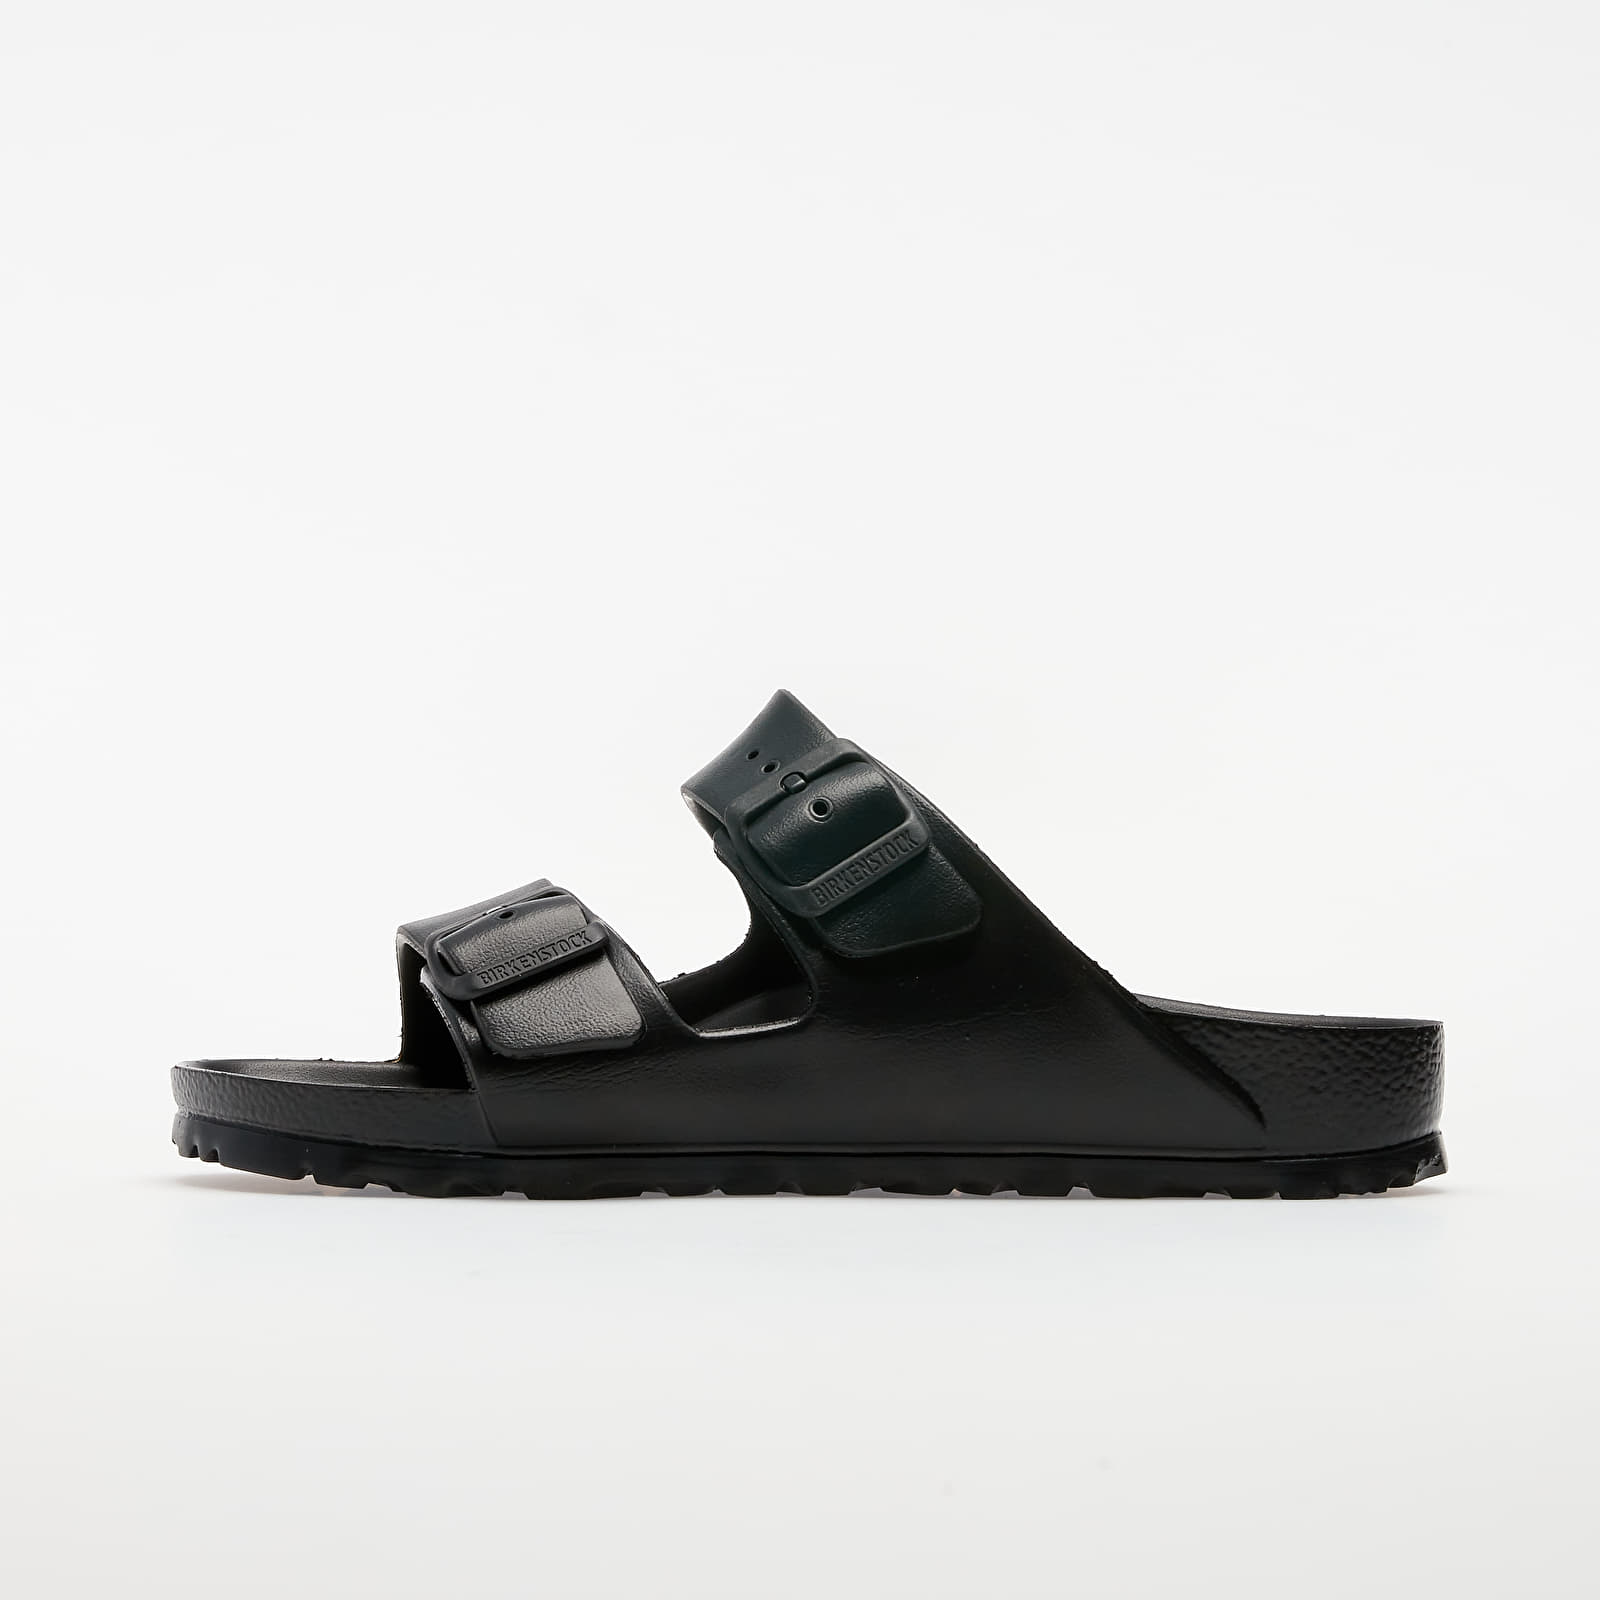 Women's shoes Birkenstock Arizona Eva Black